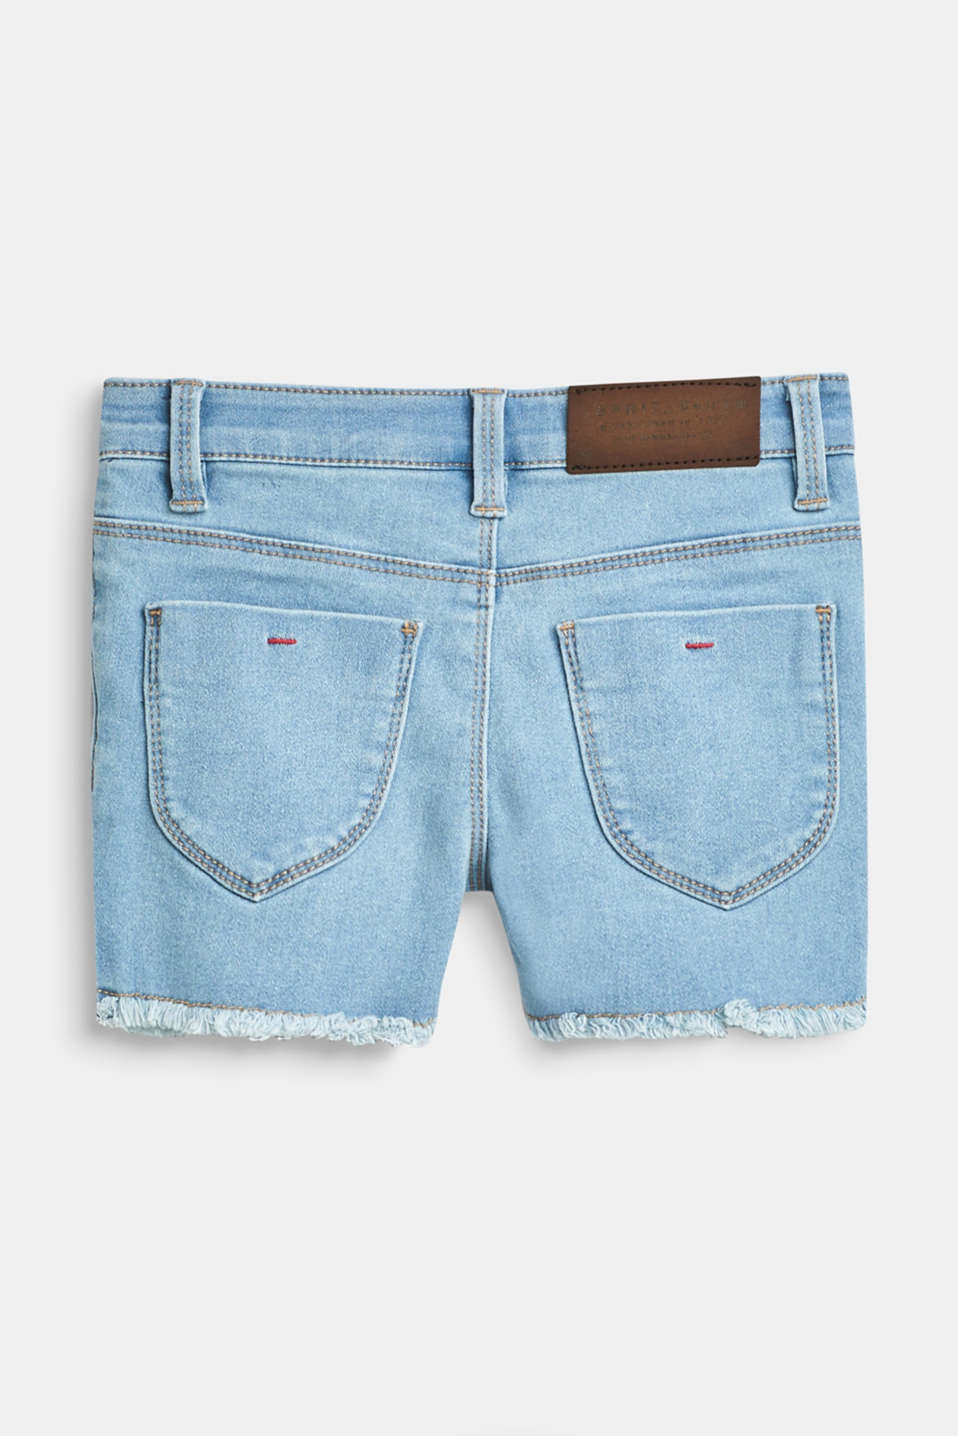 Denim shorts with a statement print, adjustable waistband, BLUE LIGHT WAS, detail image number 1